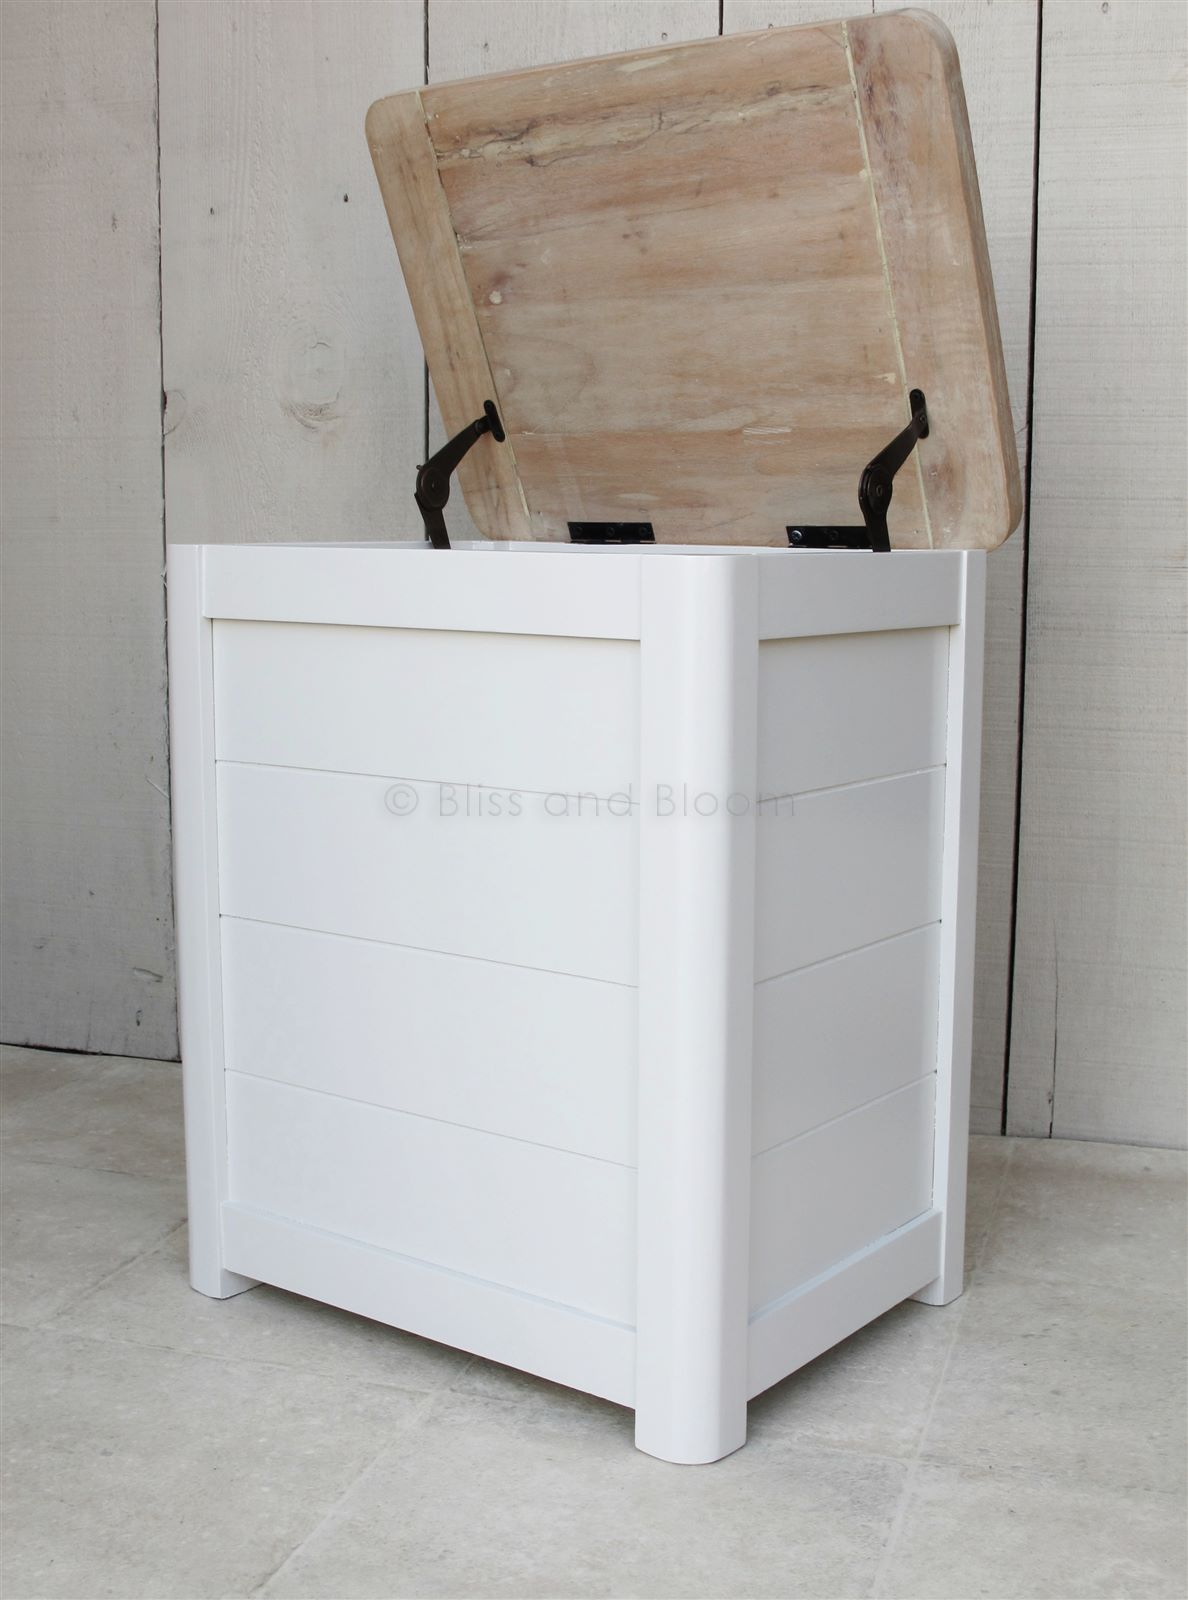 Wooden laundry linen bin-small ... & Wooden laundry linen bin Small | Bliss and Bloom Ltd Aboutintivar.Com